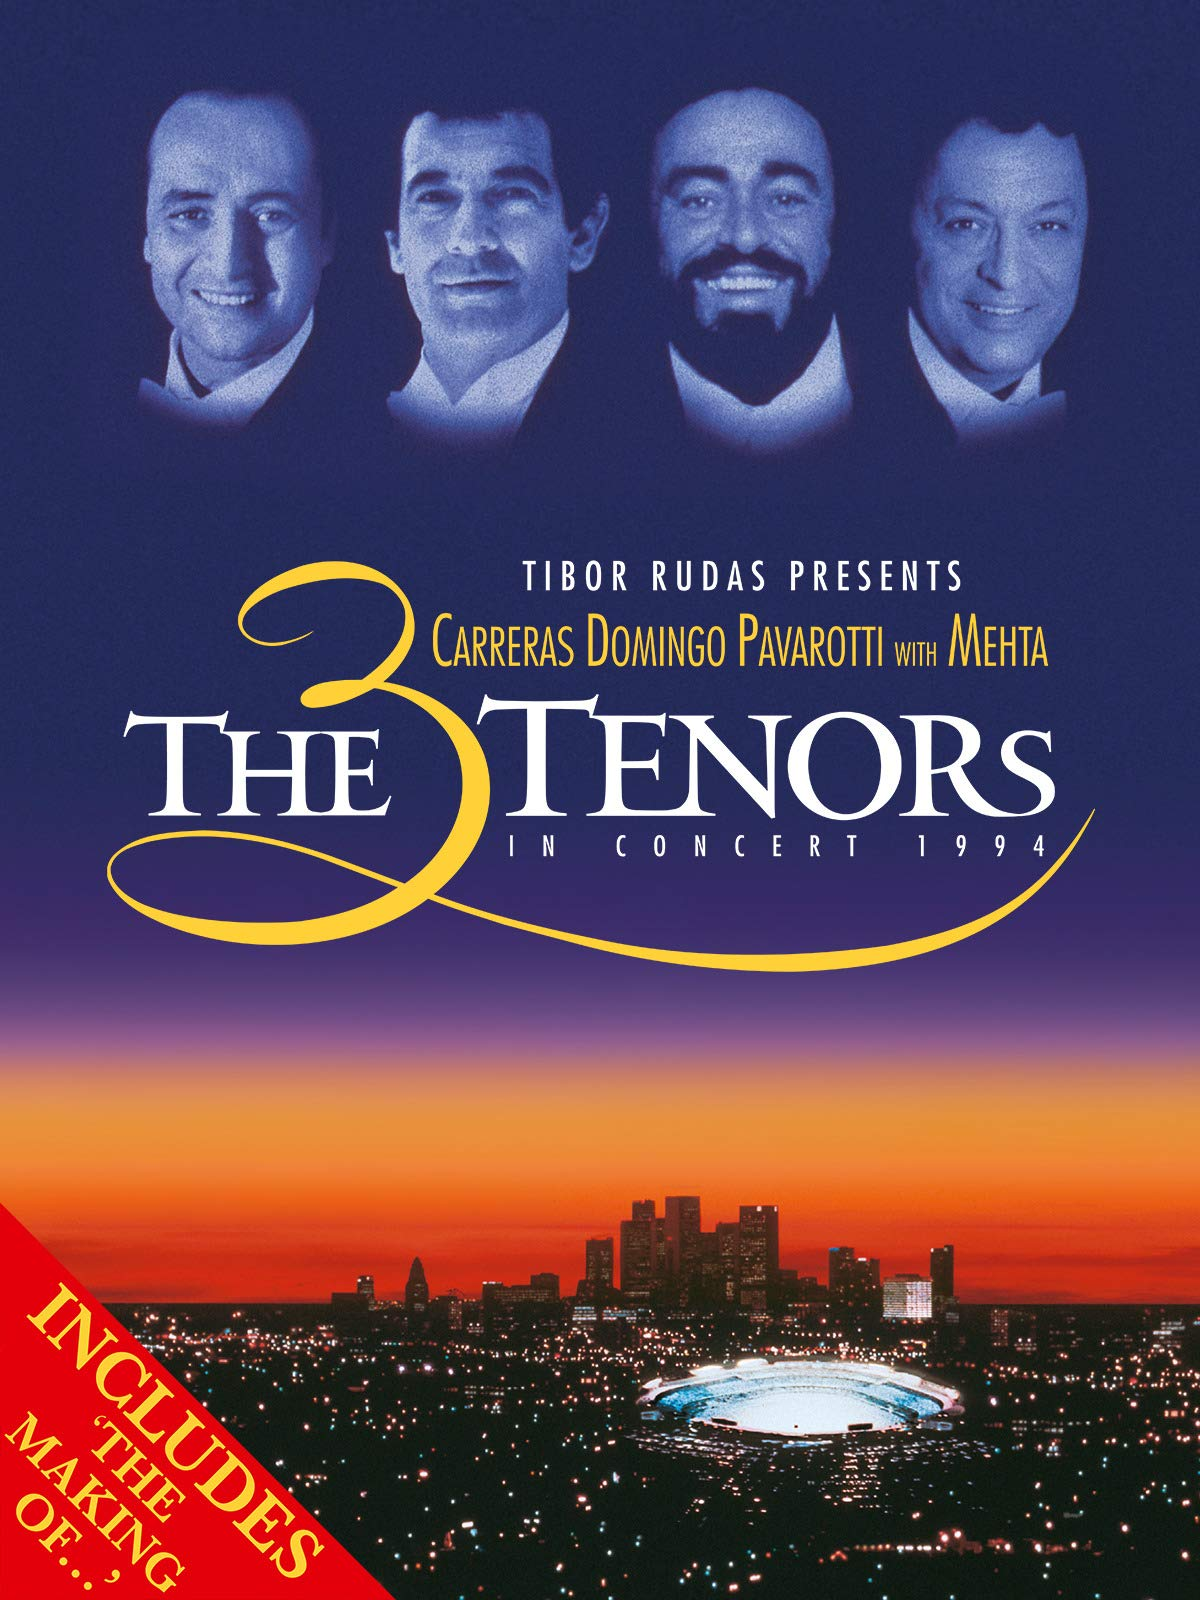 The Three Tenors in Concert 1994 with The Vision (The Making of)